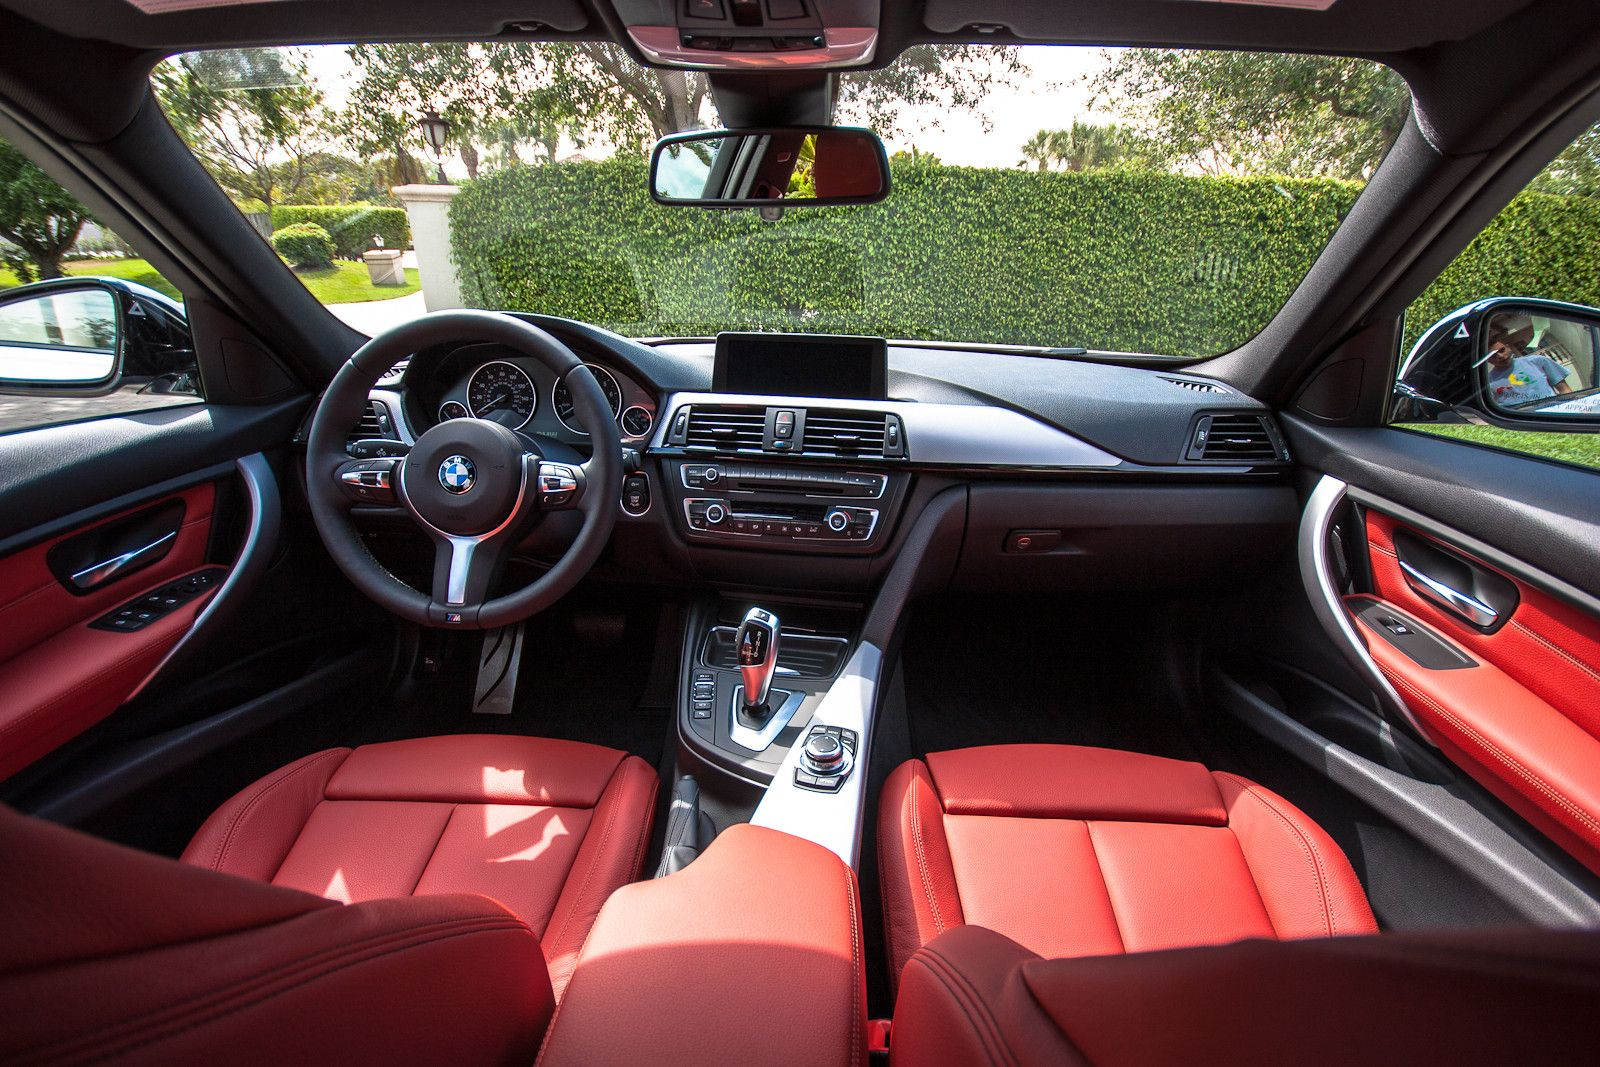 Thank You Jesus For These Coral Red Bmw Seats Amen Bmw Red